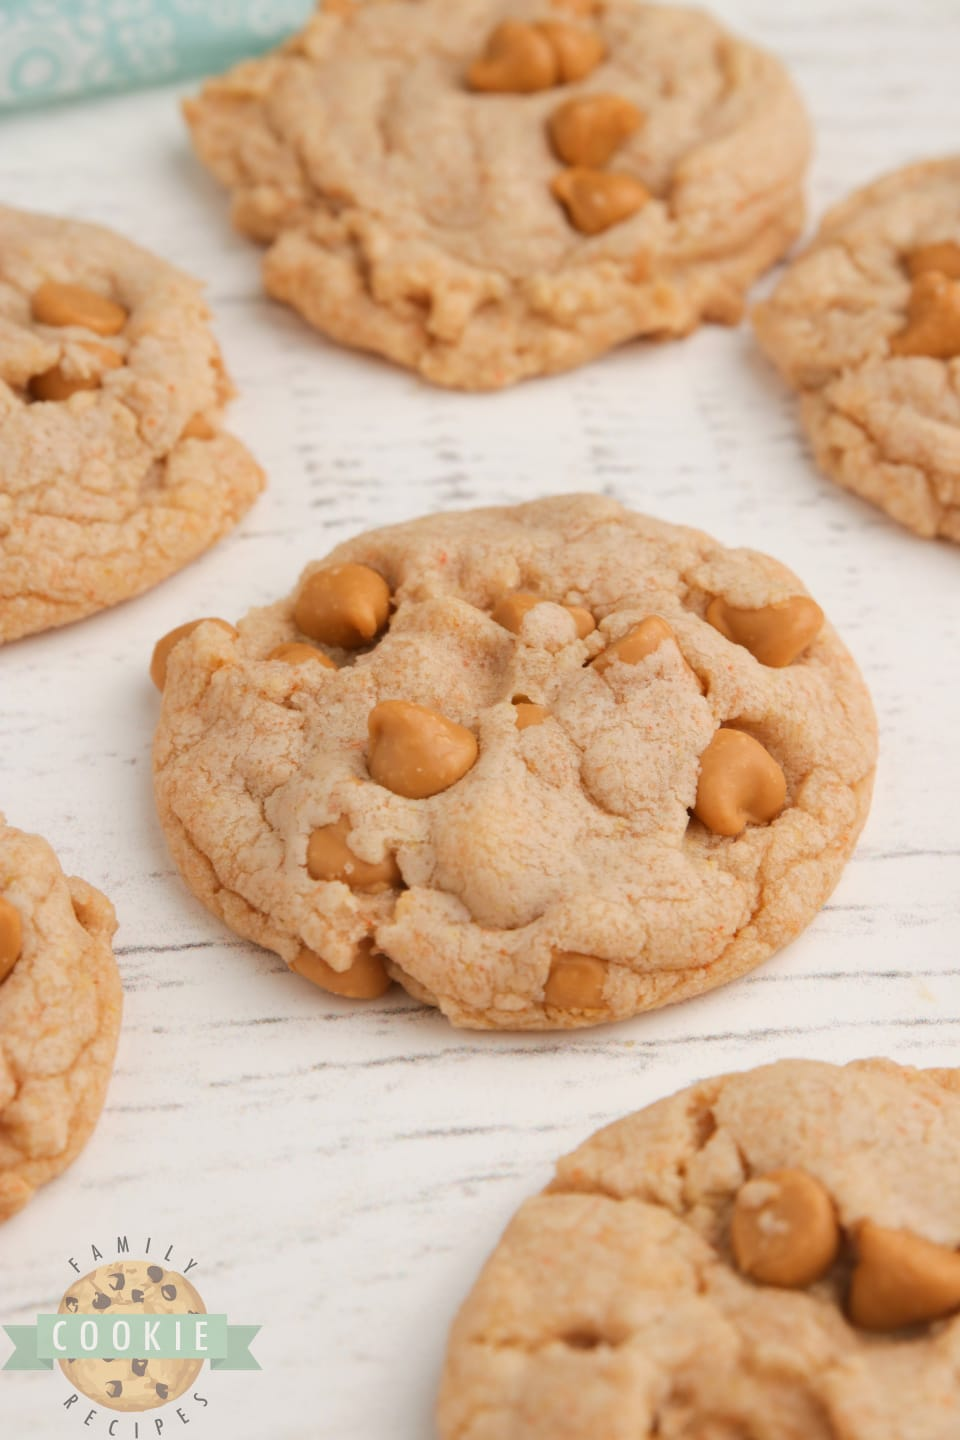 Butterscotch cookies made with a cookie mix and butterscotch pudding